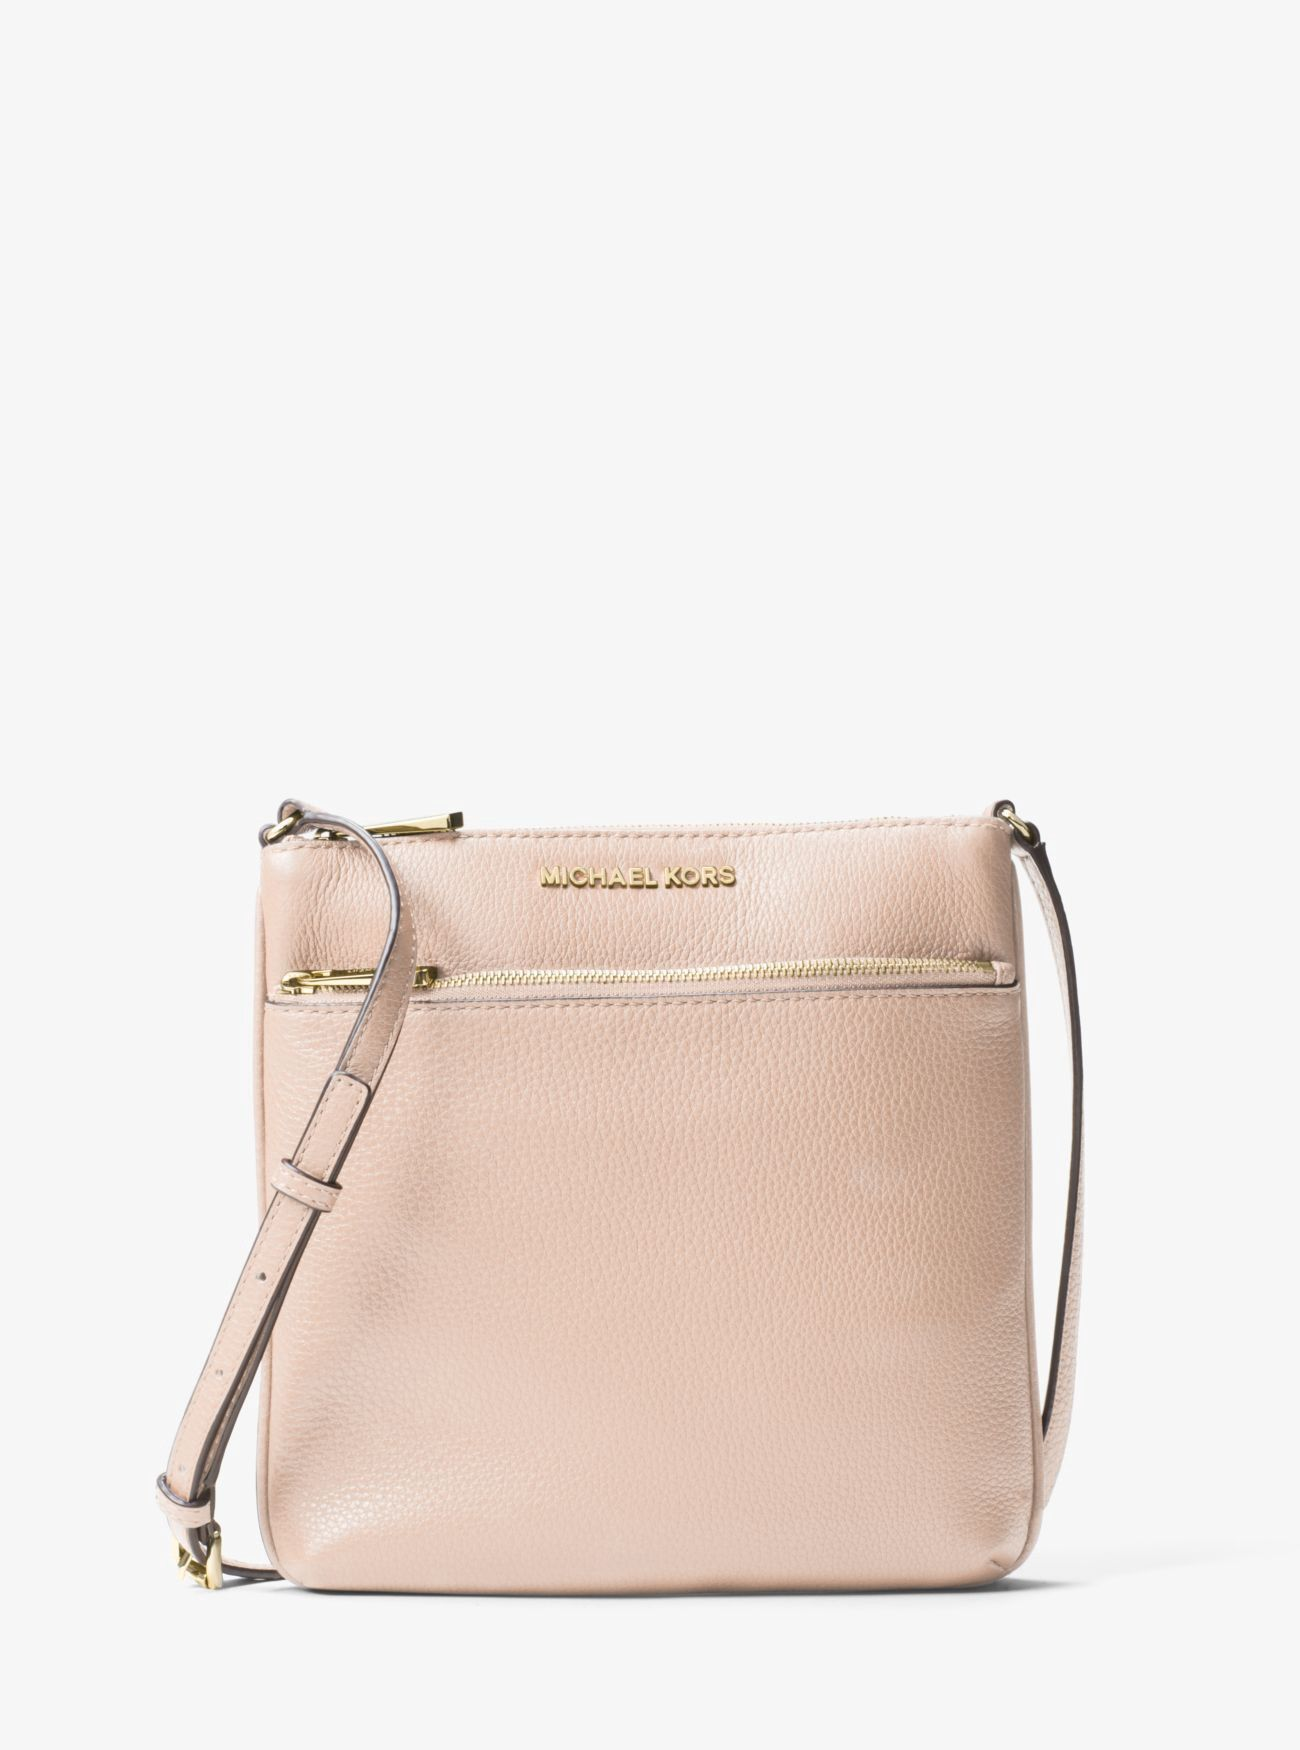 6d33294b09bcd Michael Kors Riley Small Pebbled-Leather Crossbody - Soft Pink ...